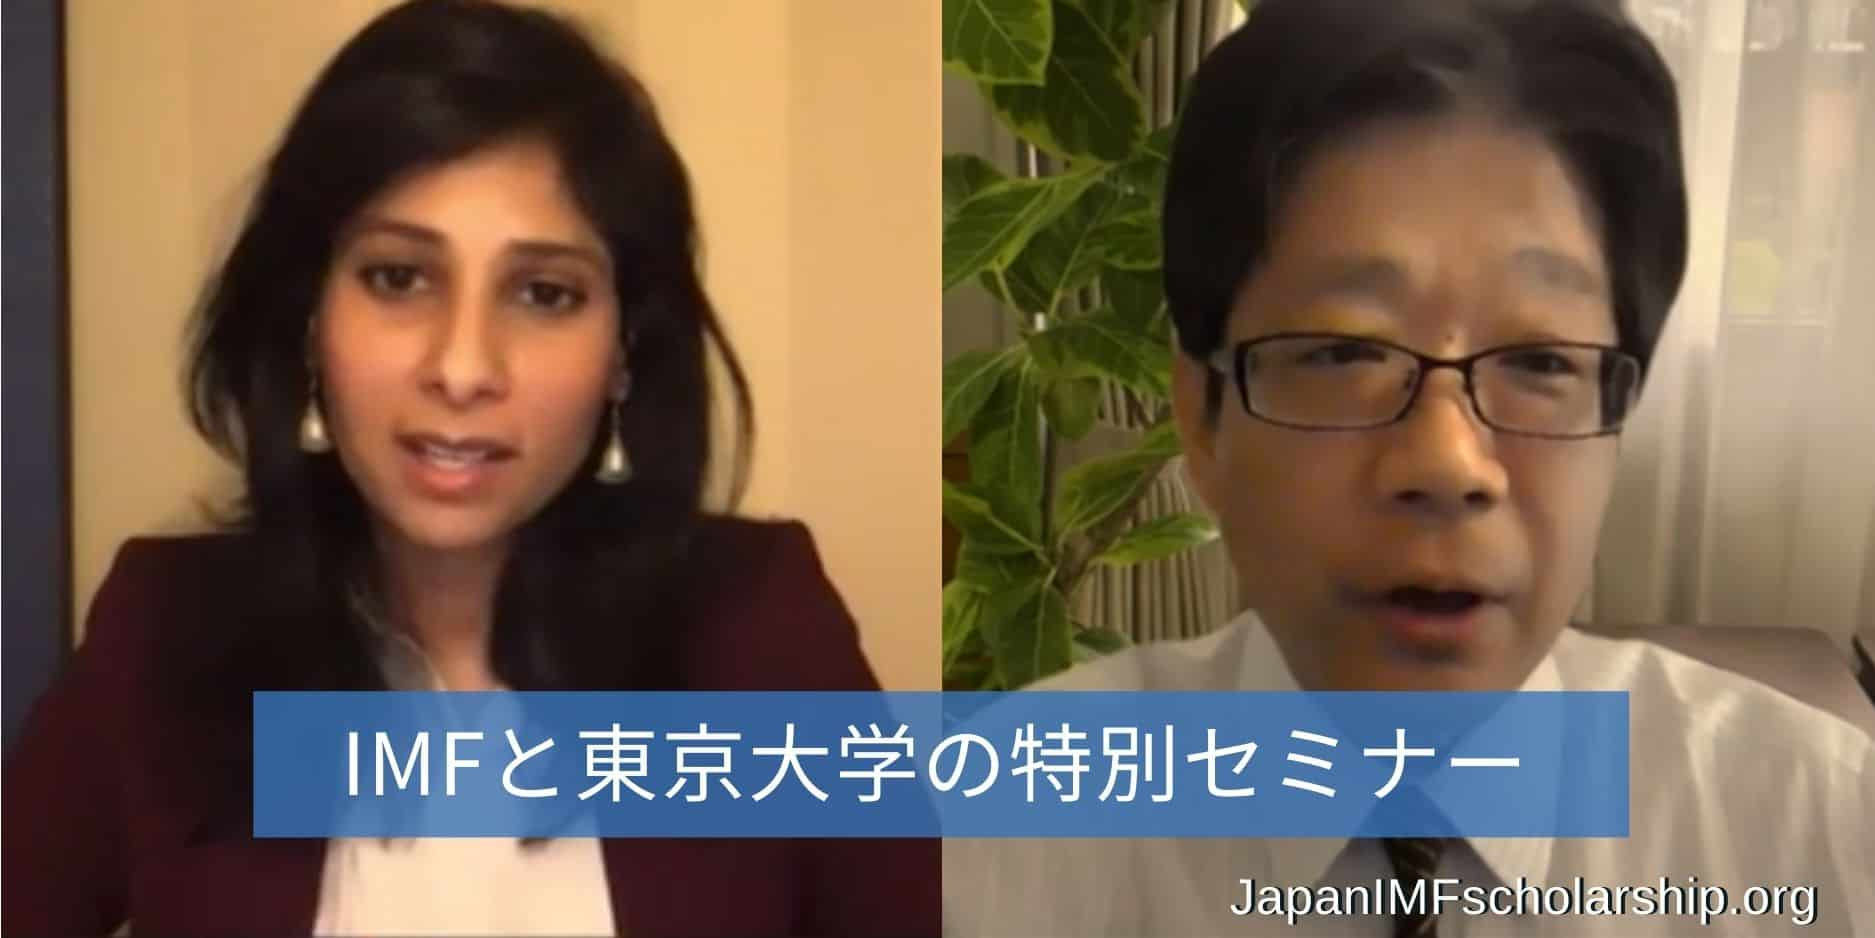 jisp web-fb imf and university of tokyo online discussion